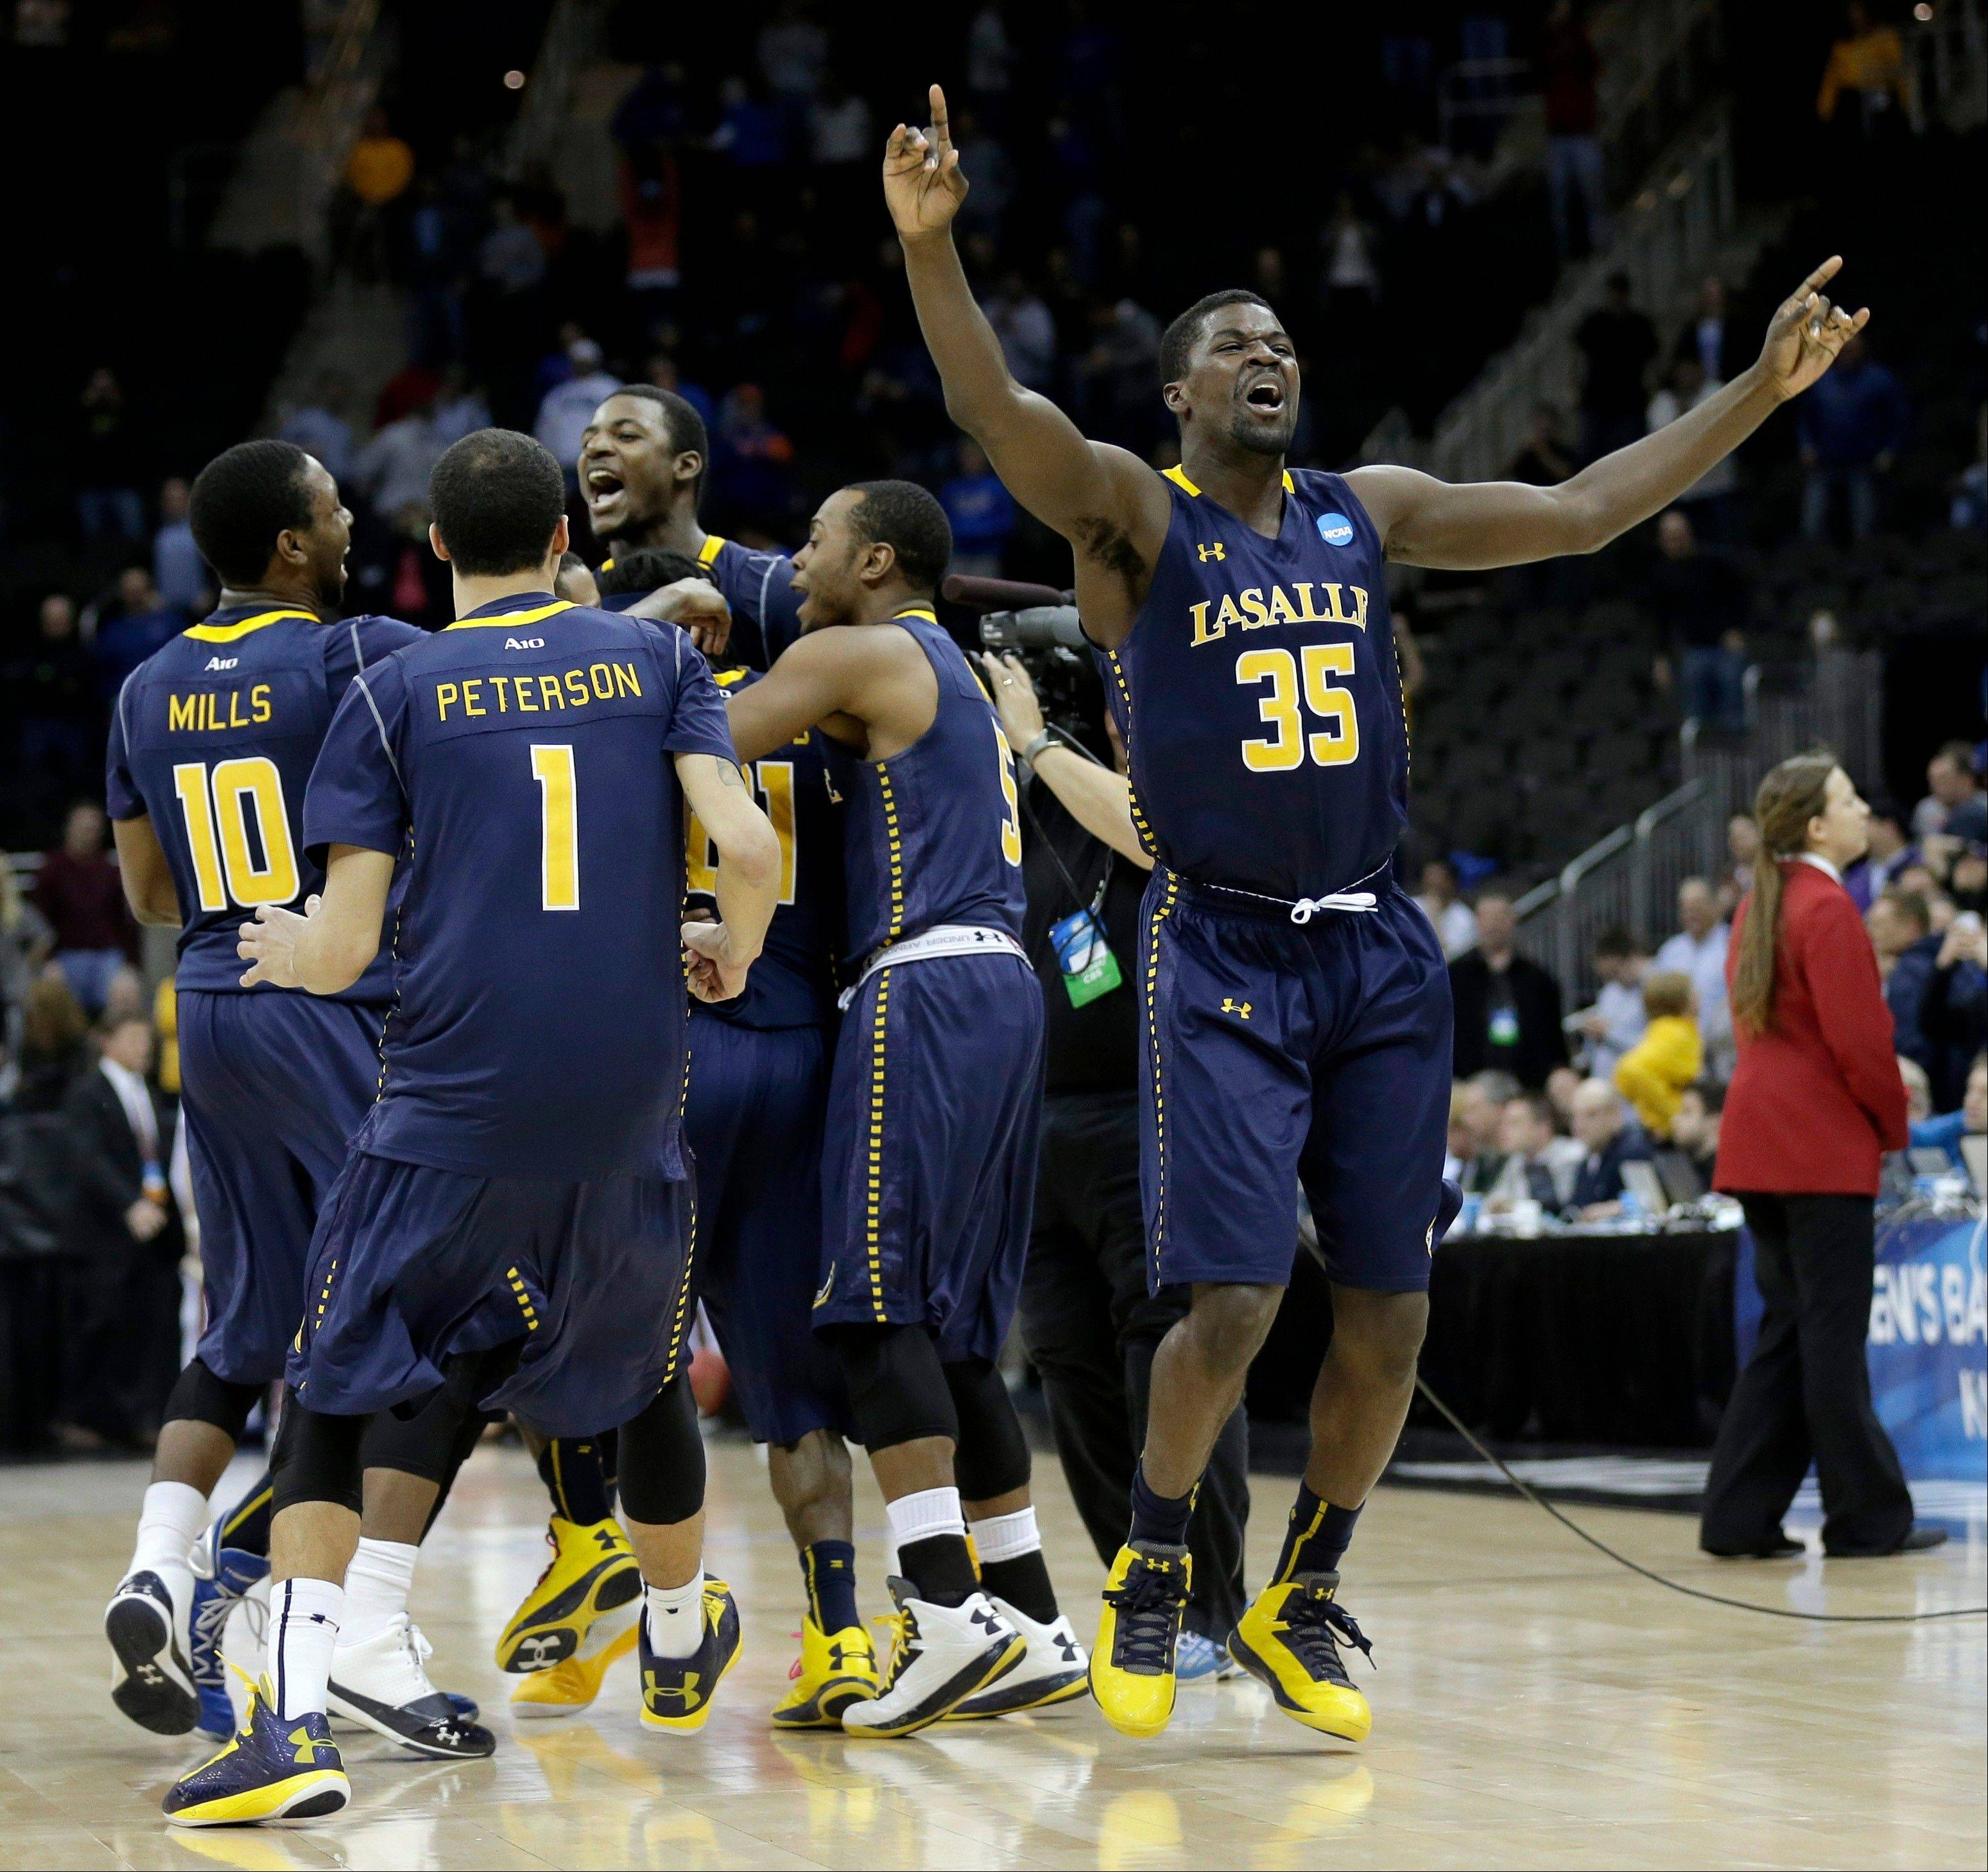 La Salle players celebrate Sunday after defeating Mississippi 76-74 in a third-round game of the NCAA tournament on in Kansas City, Mo.